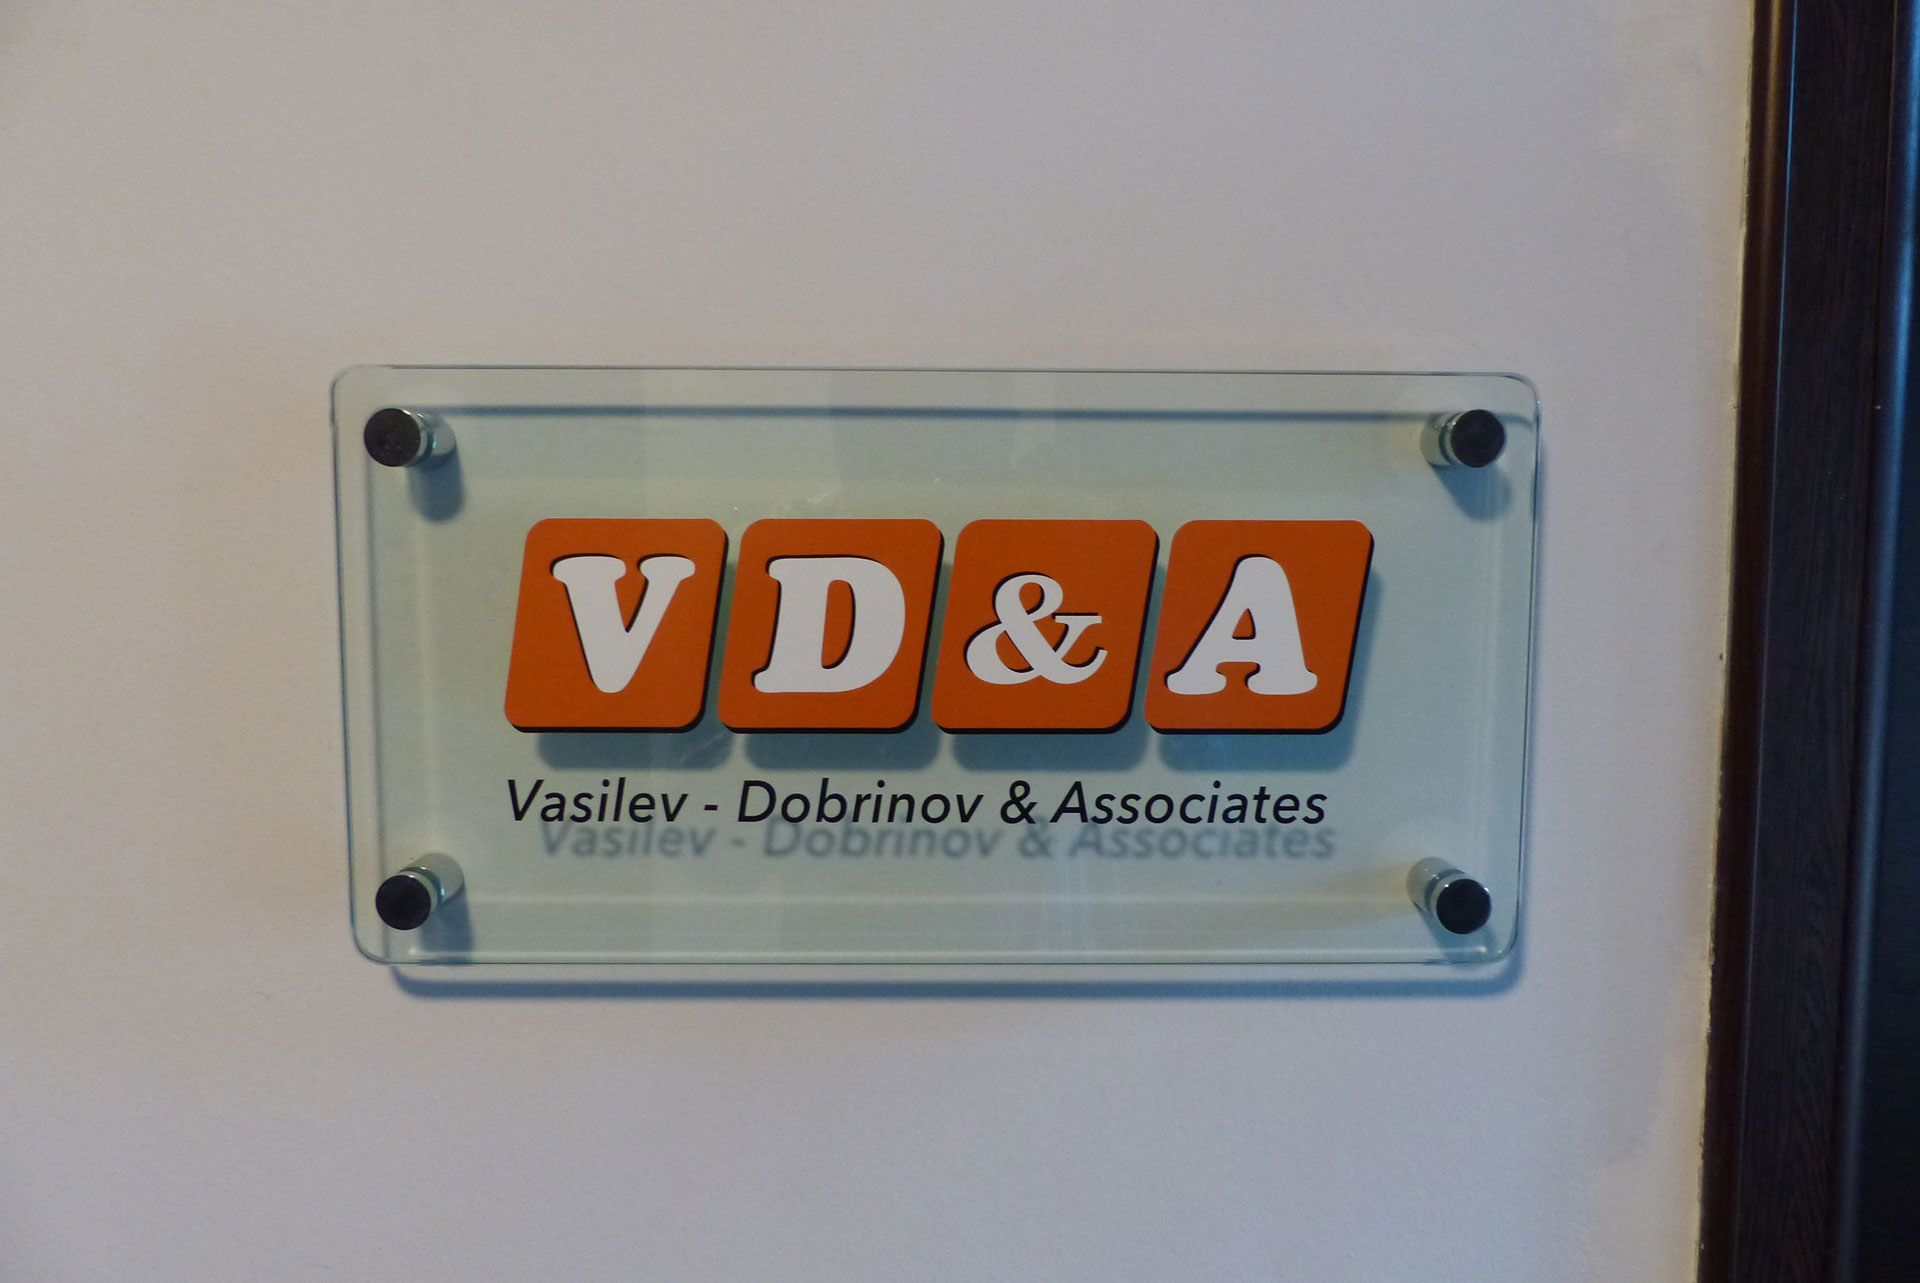 Vasilev - Dobrinov & Associates board